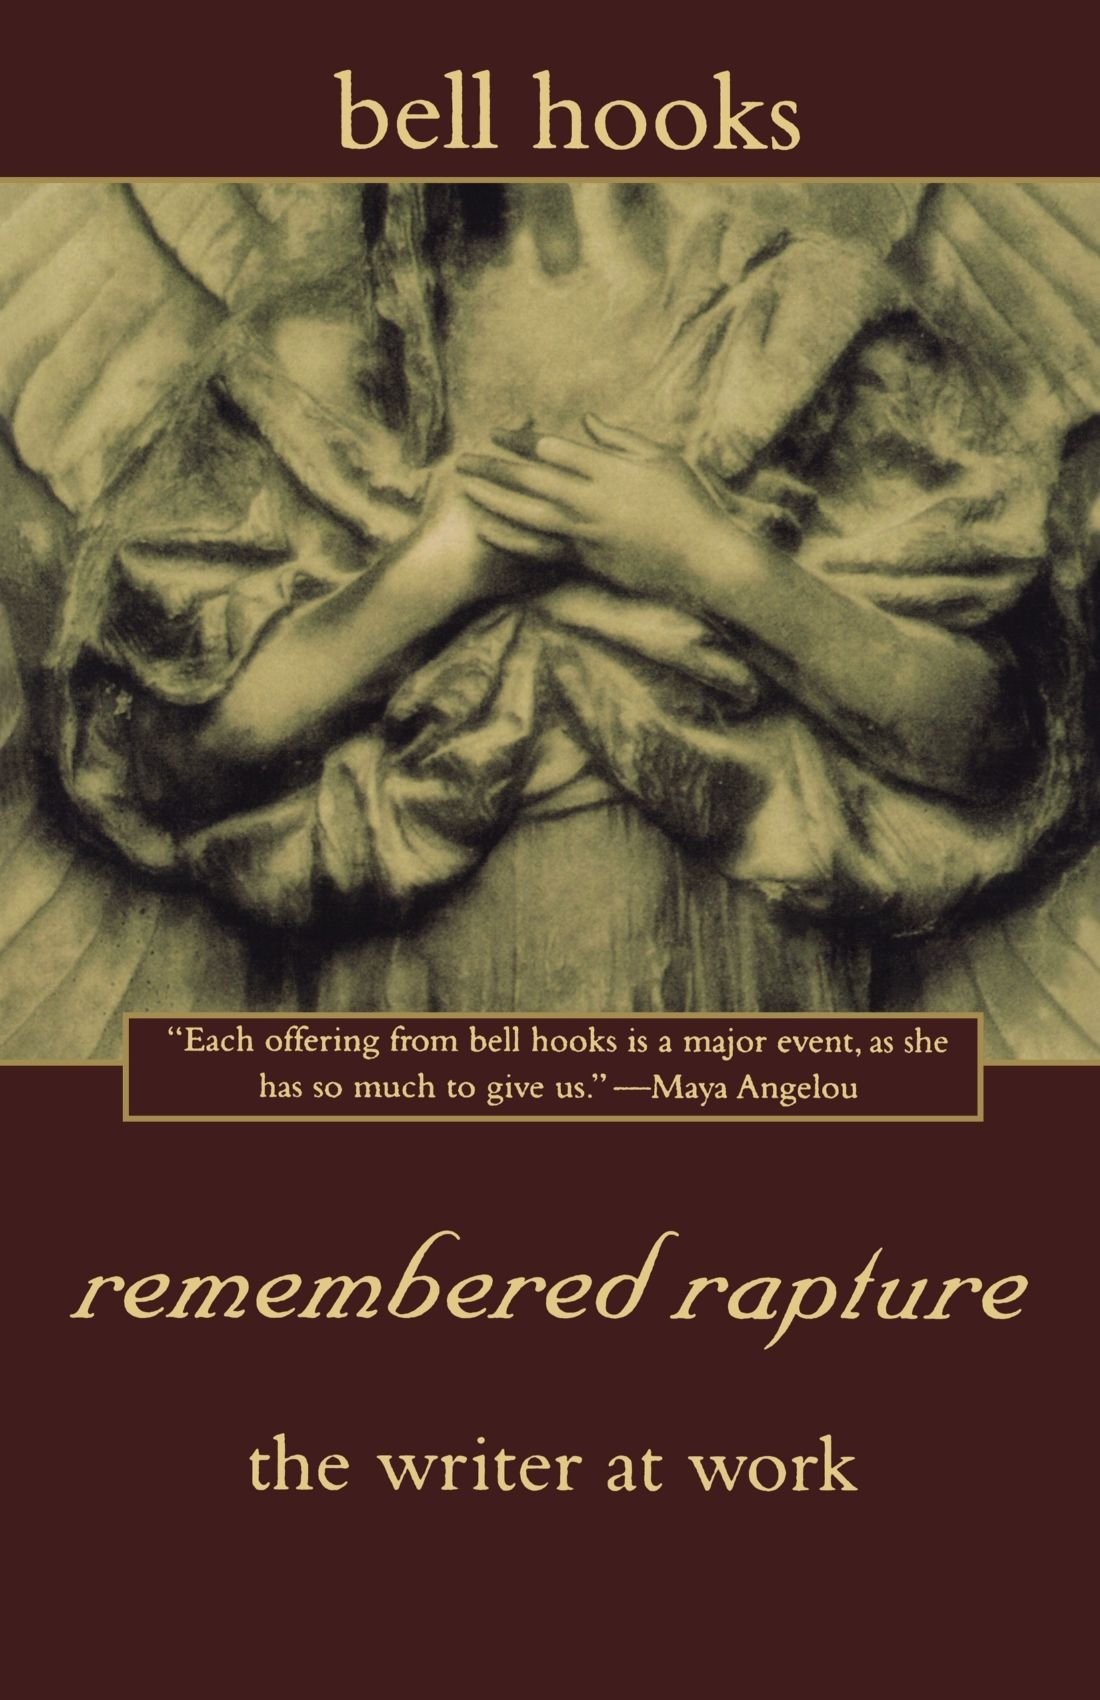 com remembered rapture the writer at work  com remembered rapture the writer at work 9780805059106 bell hooks books